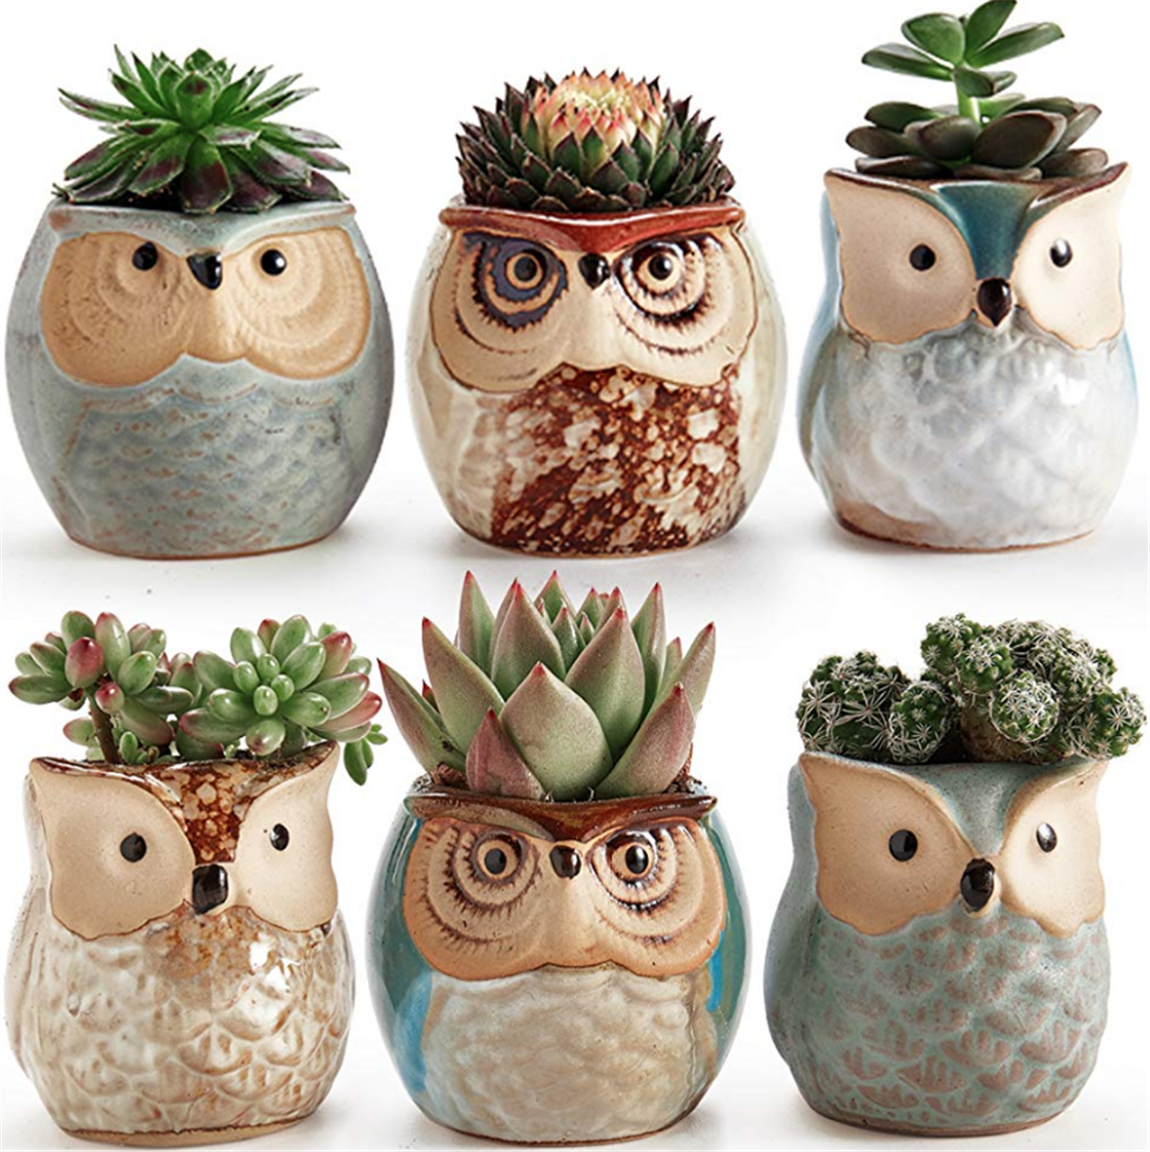 Amazon – Set of 6 Owl Flower Pots For Succulents Only $14.99! Plus Receive Two Succulents a Month For $8.00 Shipped!